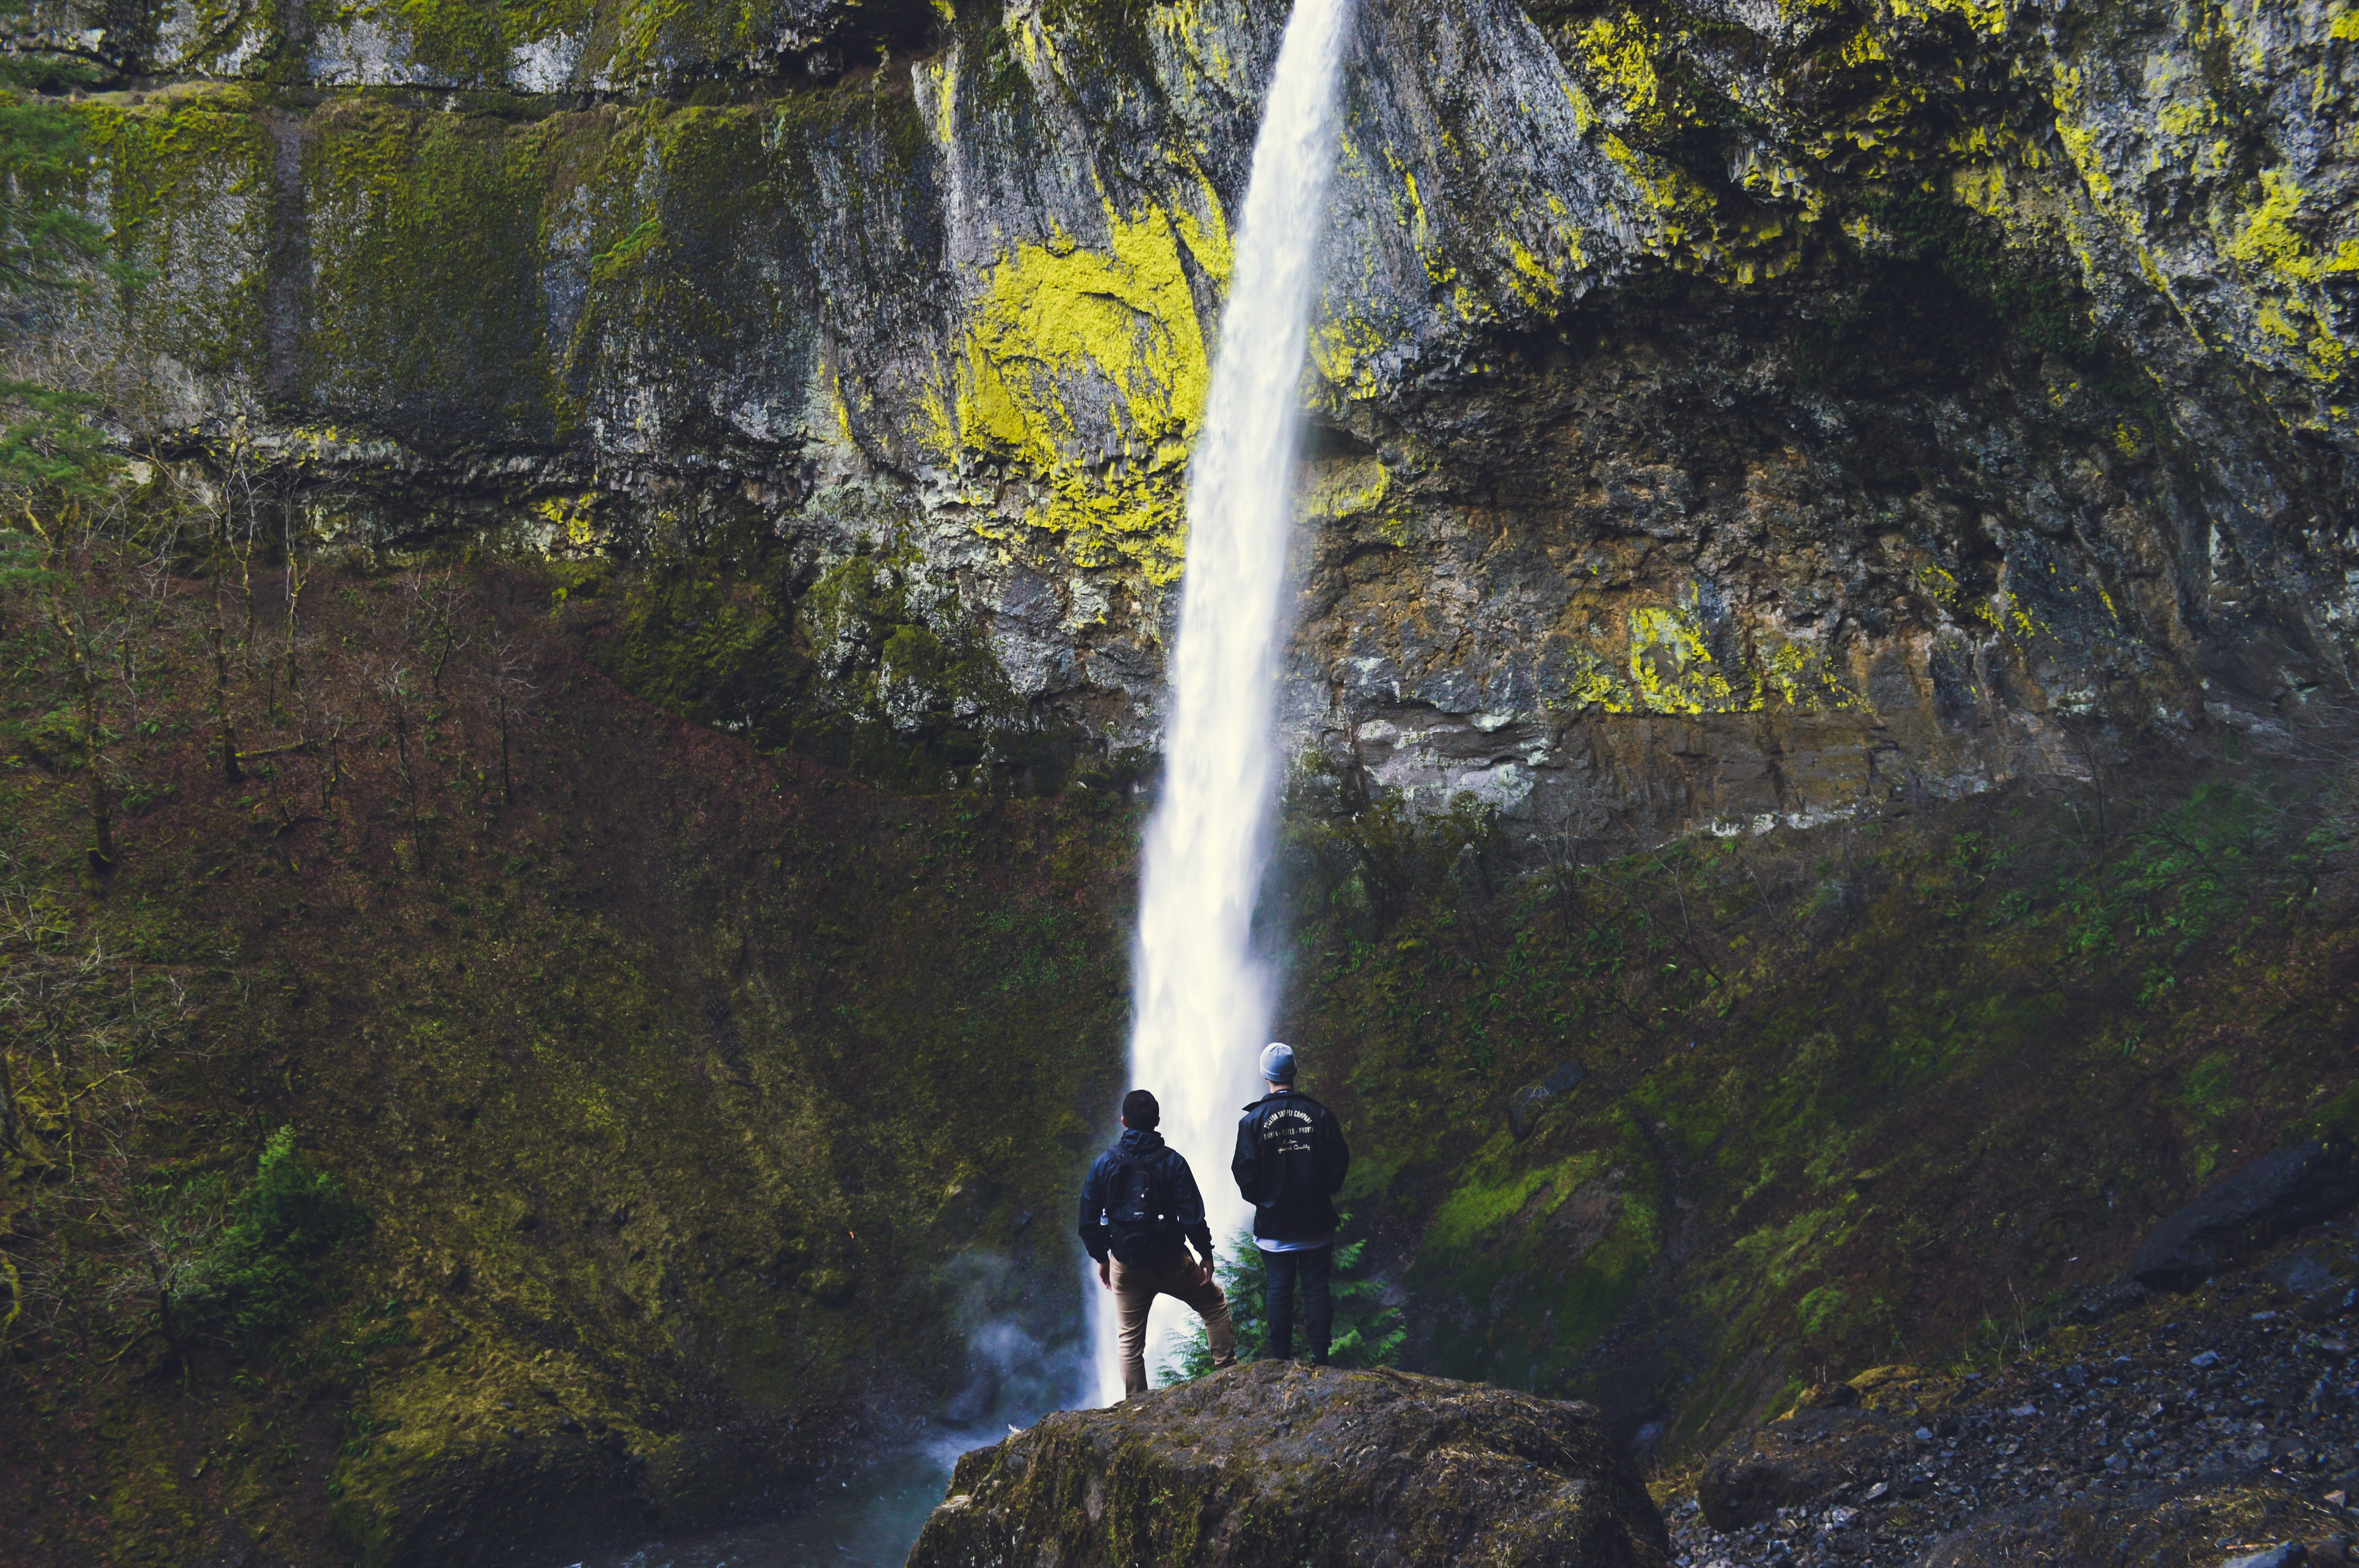 Two male hikers looking at a tall waterfall tumbling down from the rocky face